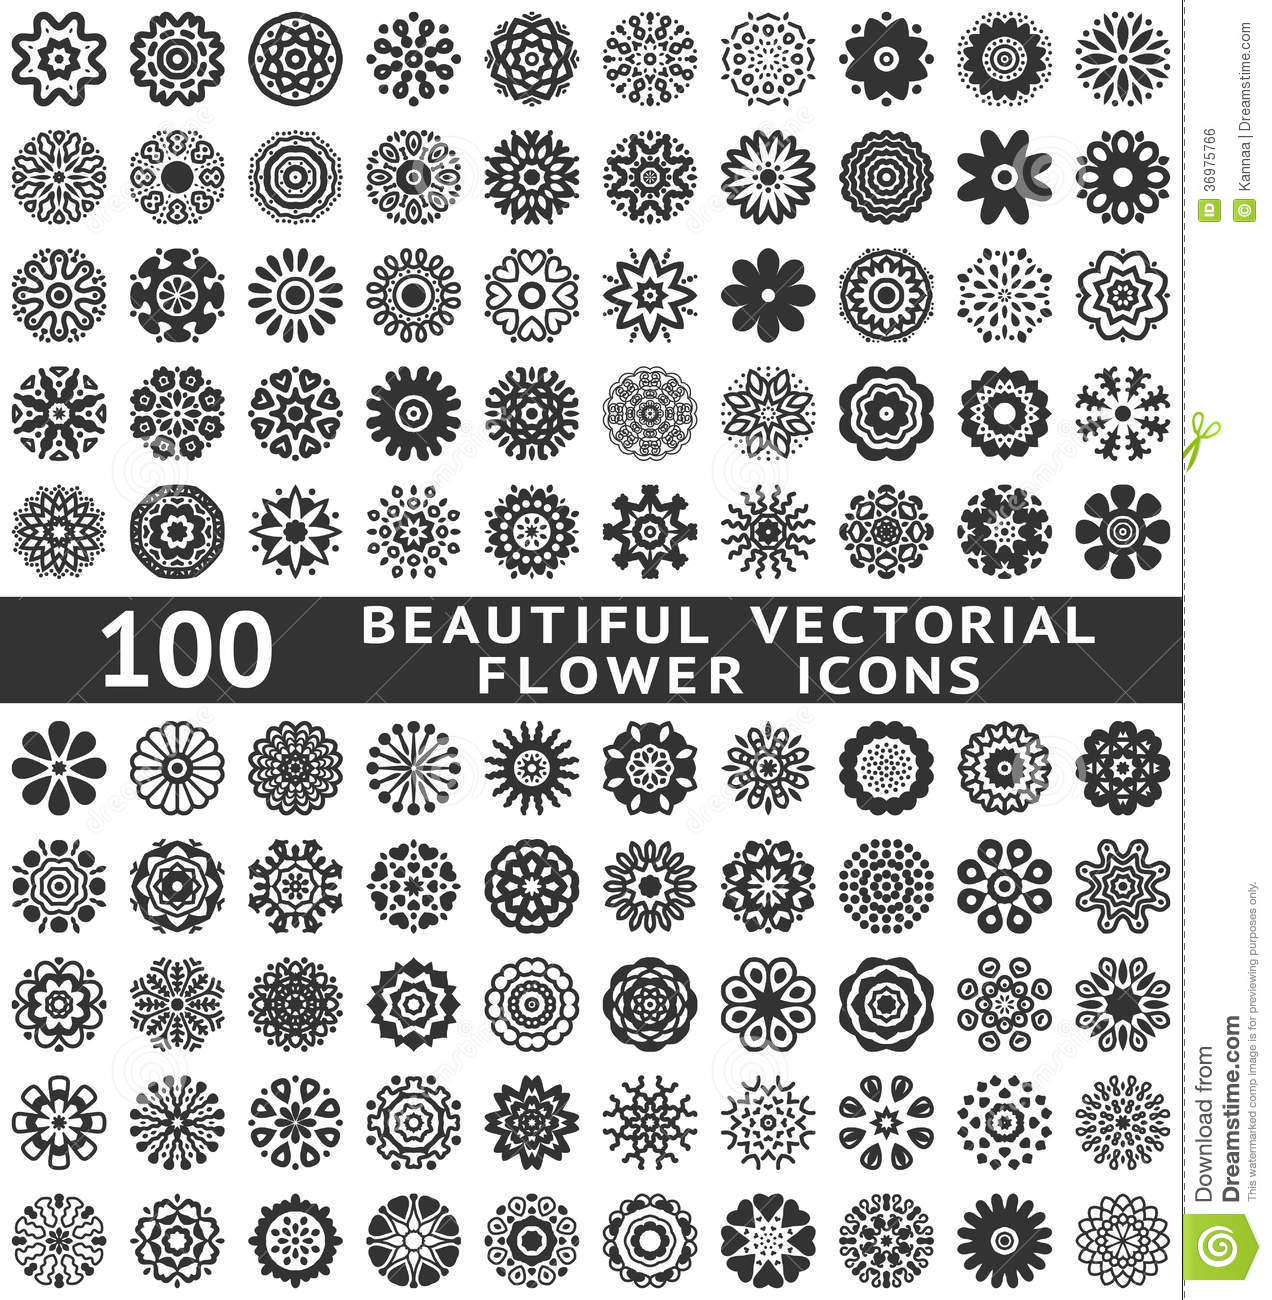 Beautiful Abstract Flower Icons Vector Royalty Free Stock Image Image 369